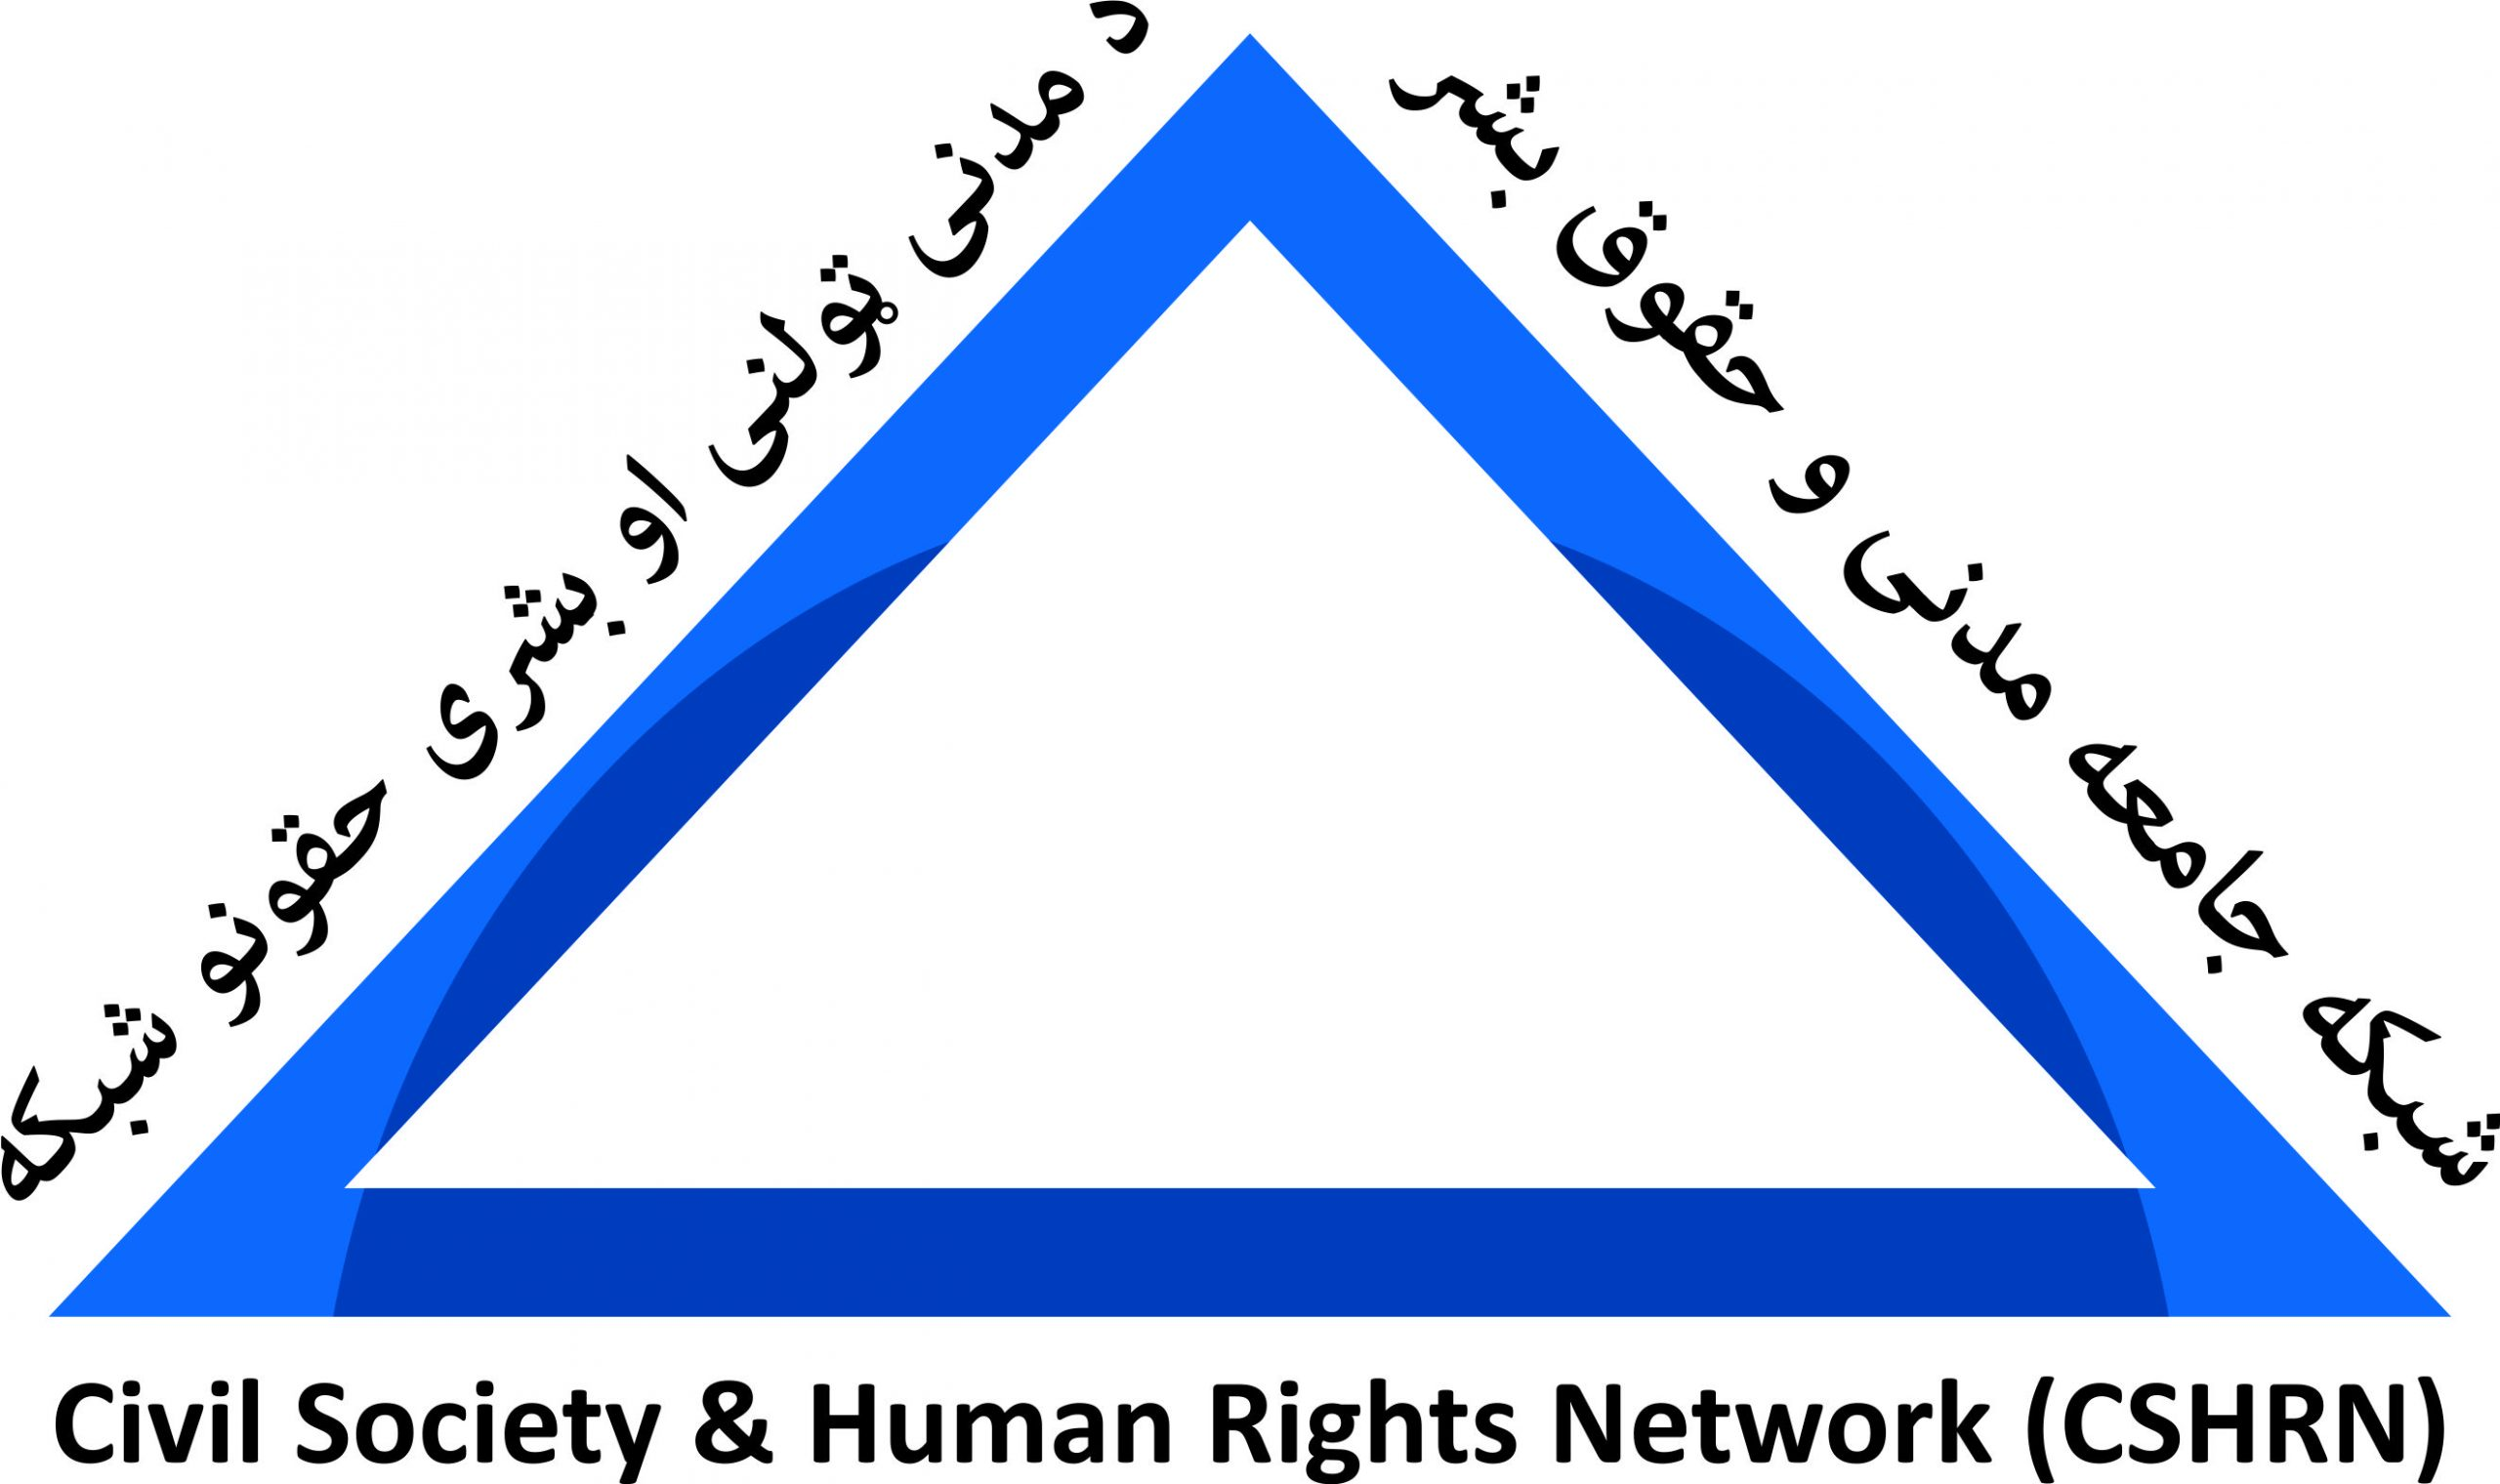 CSHRN's statement regarding the martyrdom of Tolo TV's staff